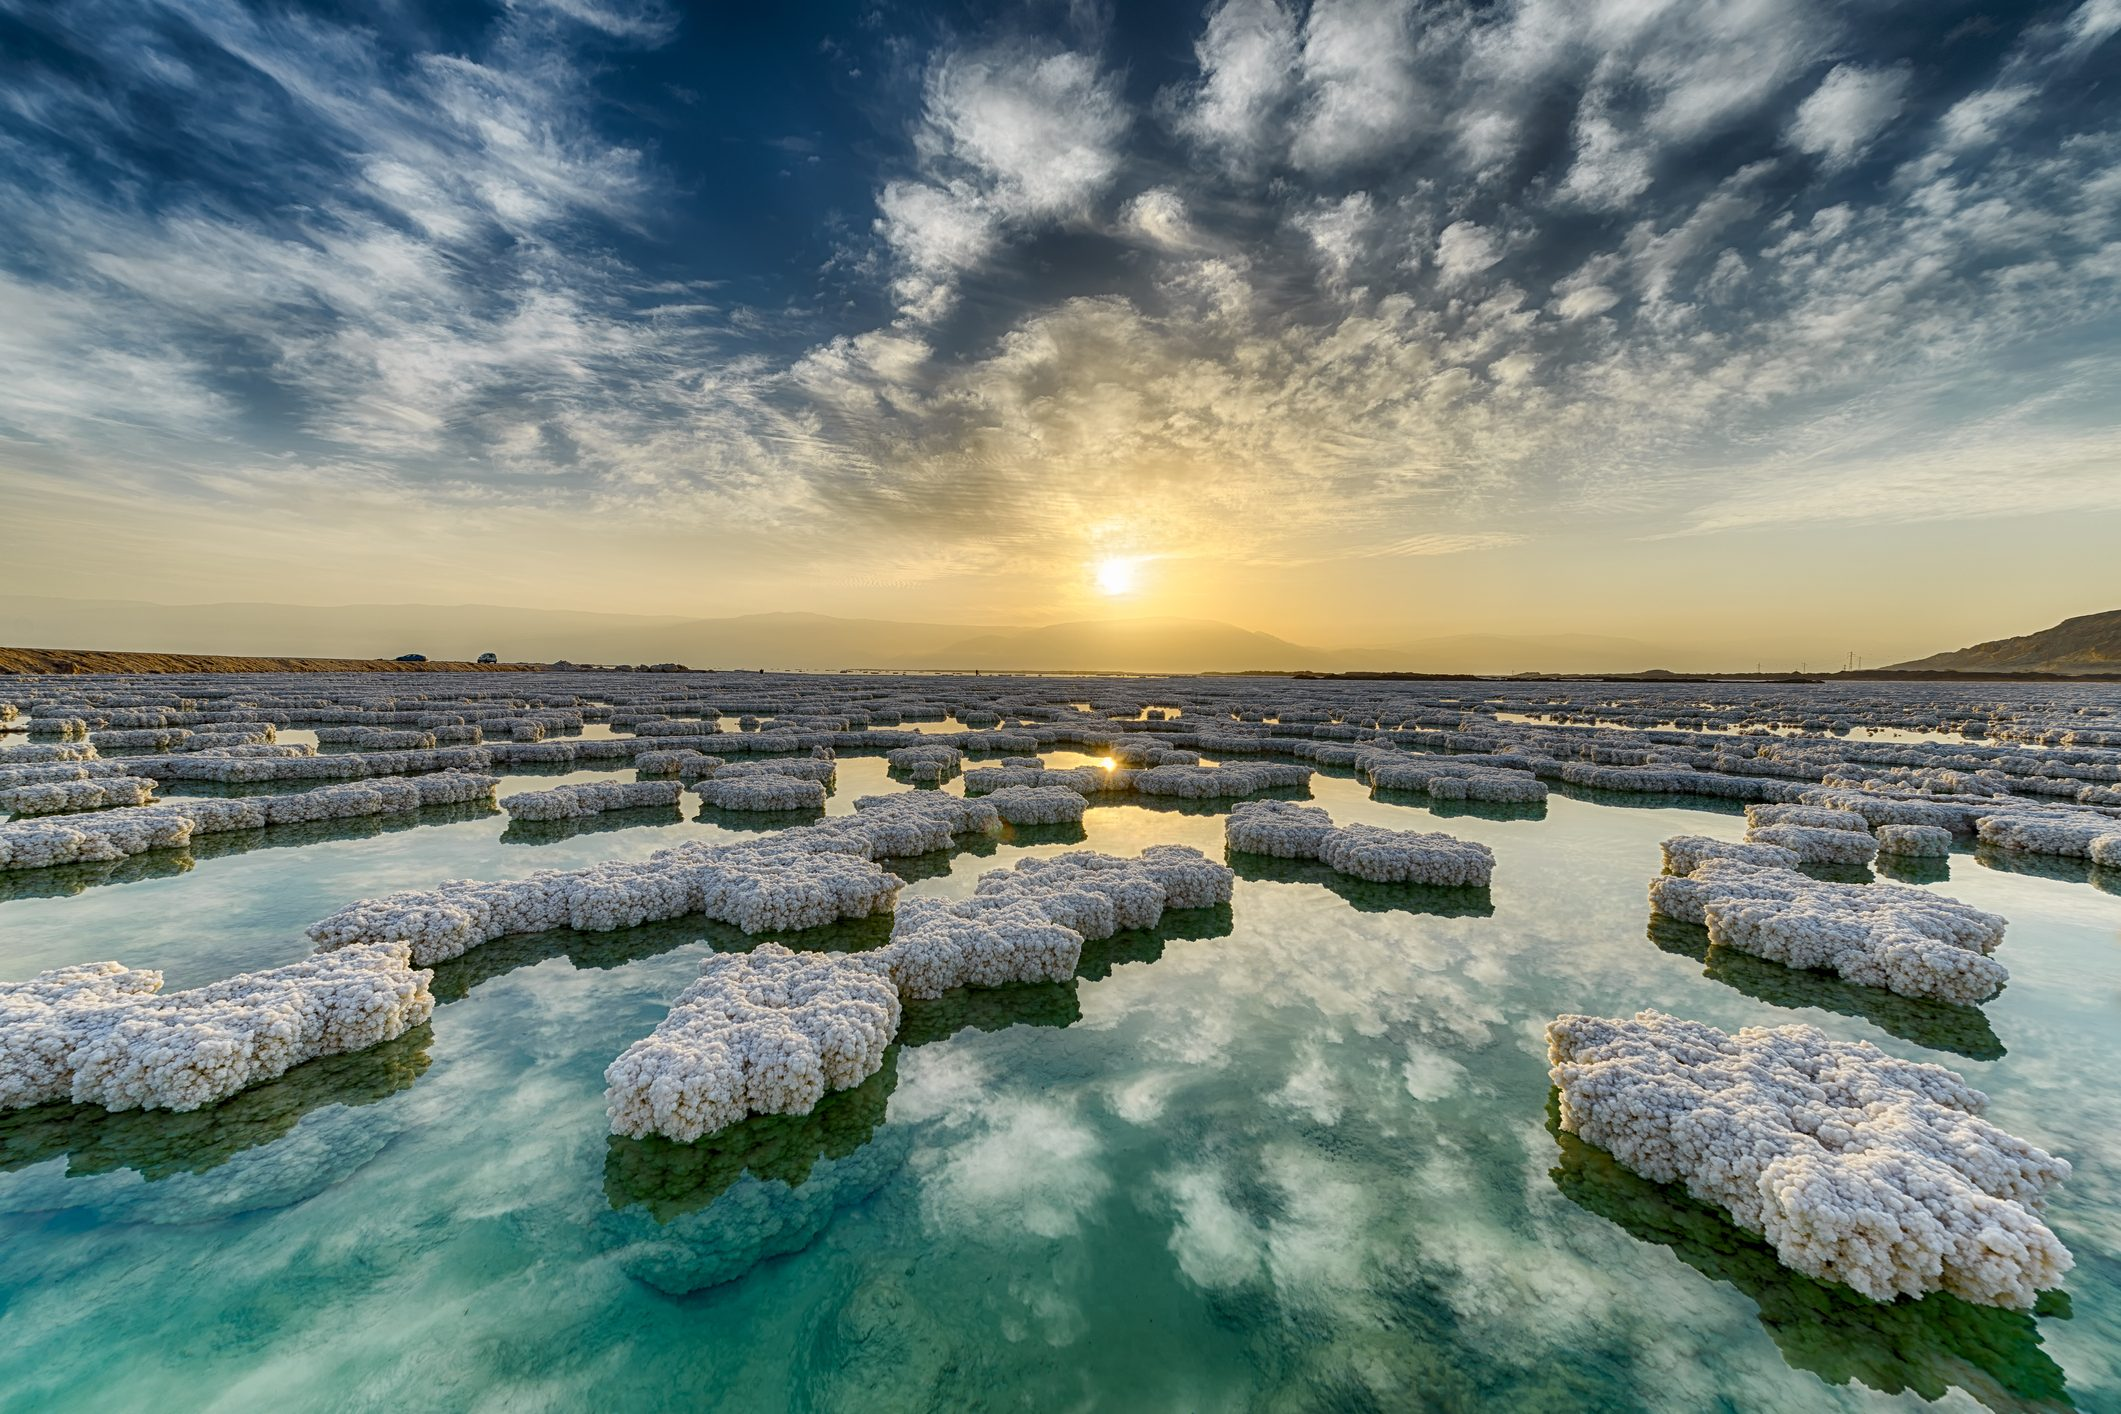 Salt crystals on surface of Dead Sea, Israel